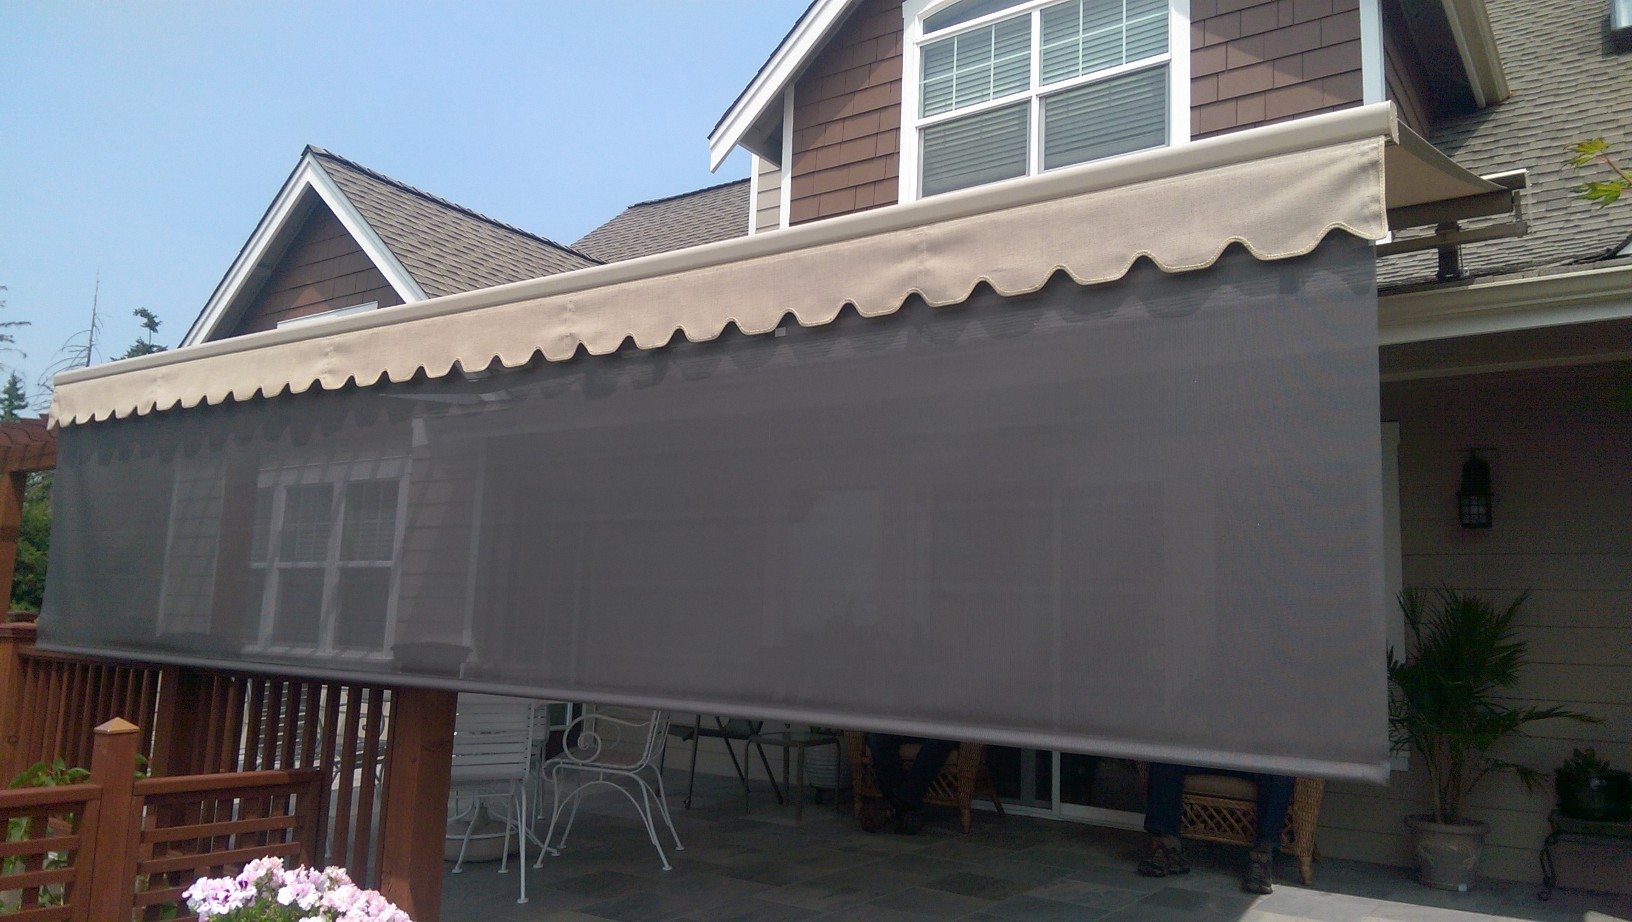 philadelphia me prices metal sale info seattle commercial used near for co awning awnings denver everythingbeauty